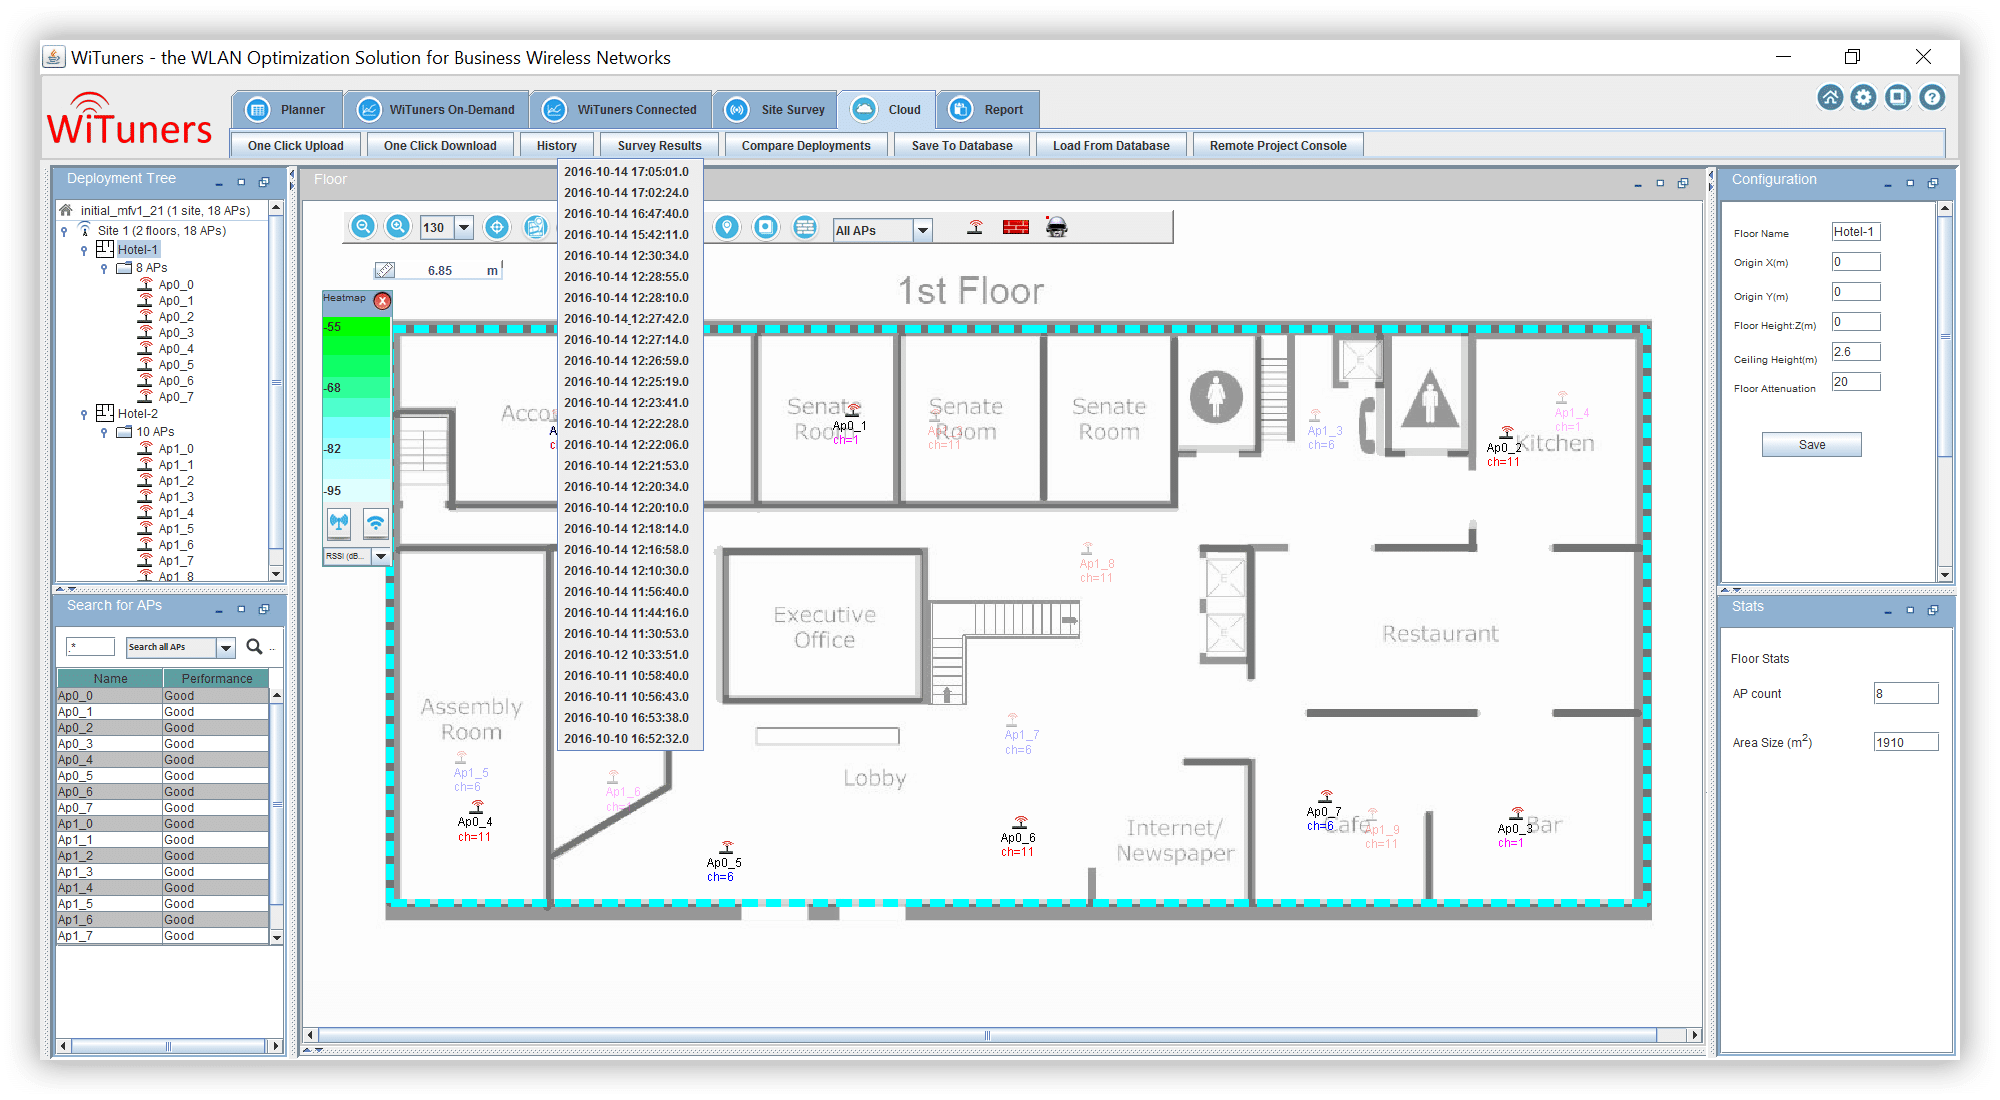 Show revisions of a deployment plan in WiFi planning software